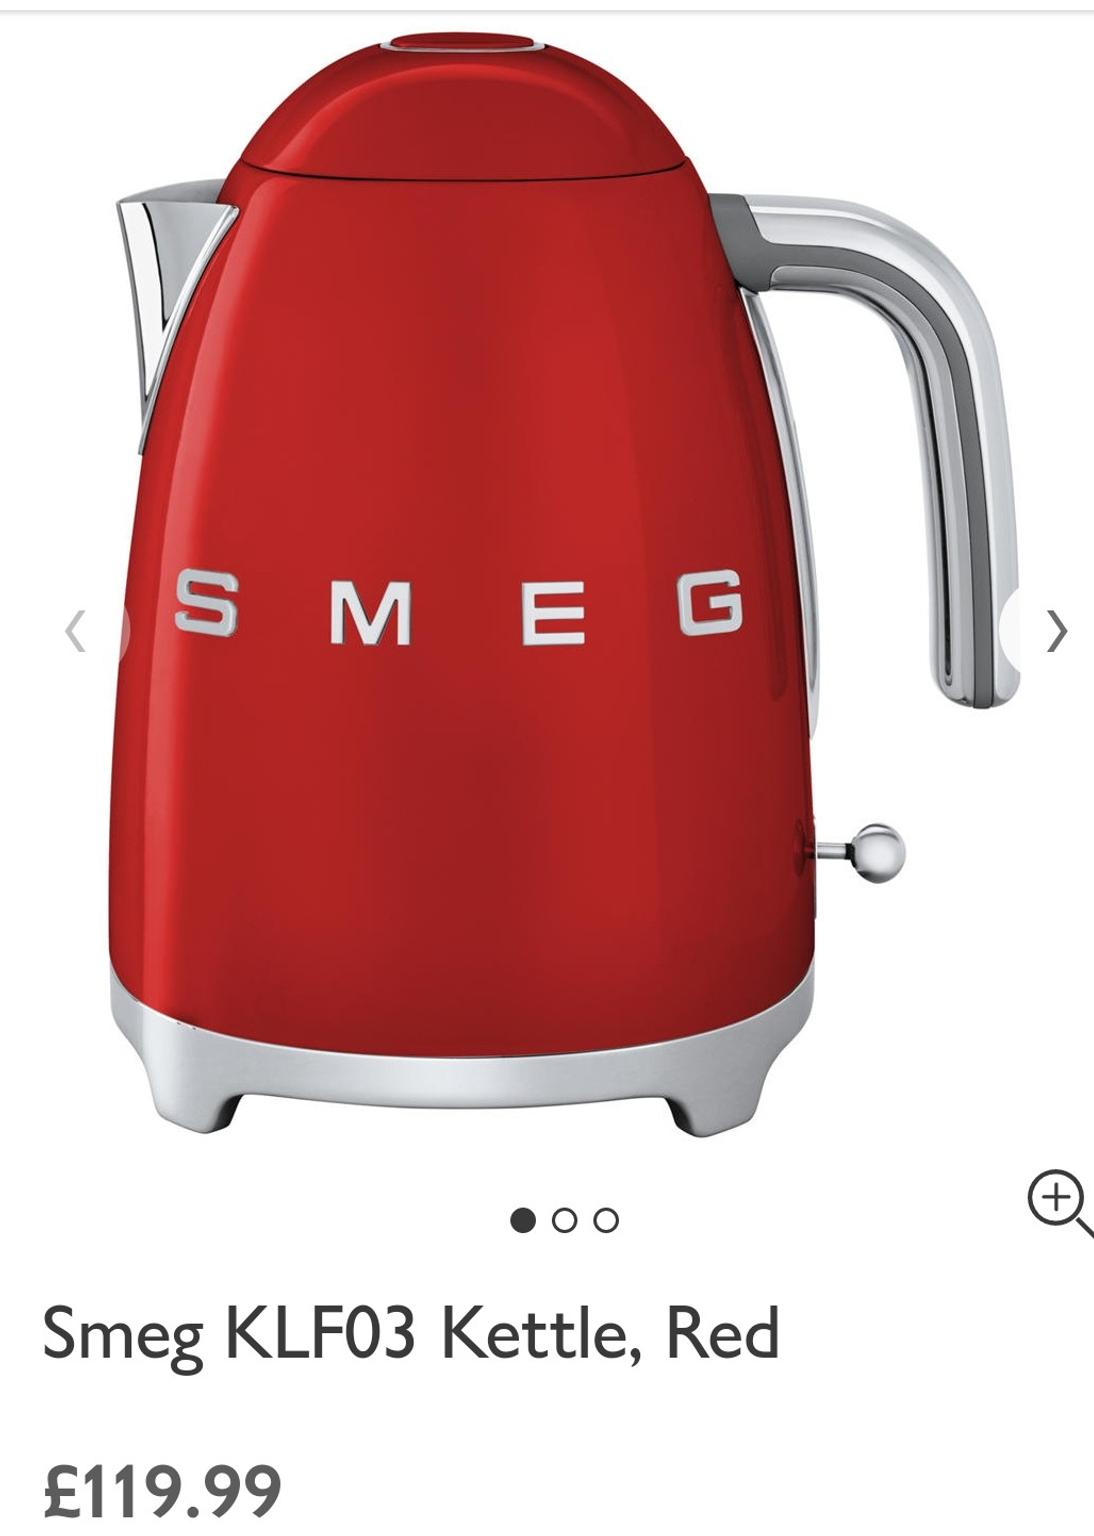 Brand new Smeg Kettle in SP11 Valley